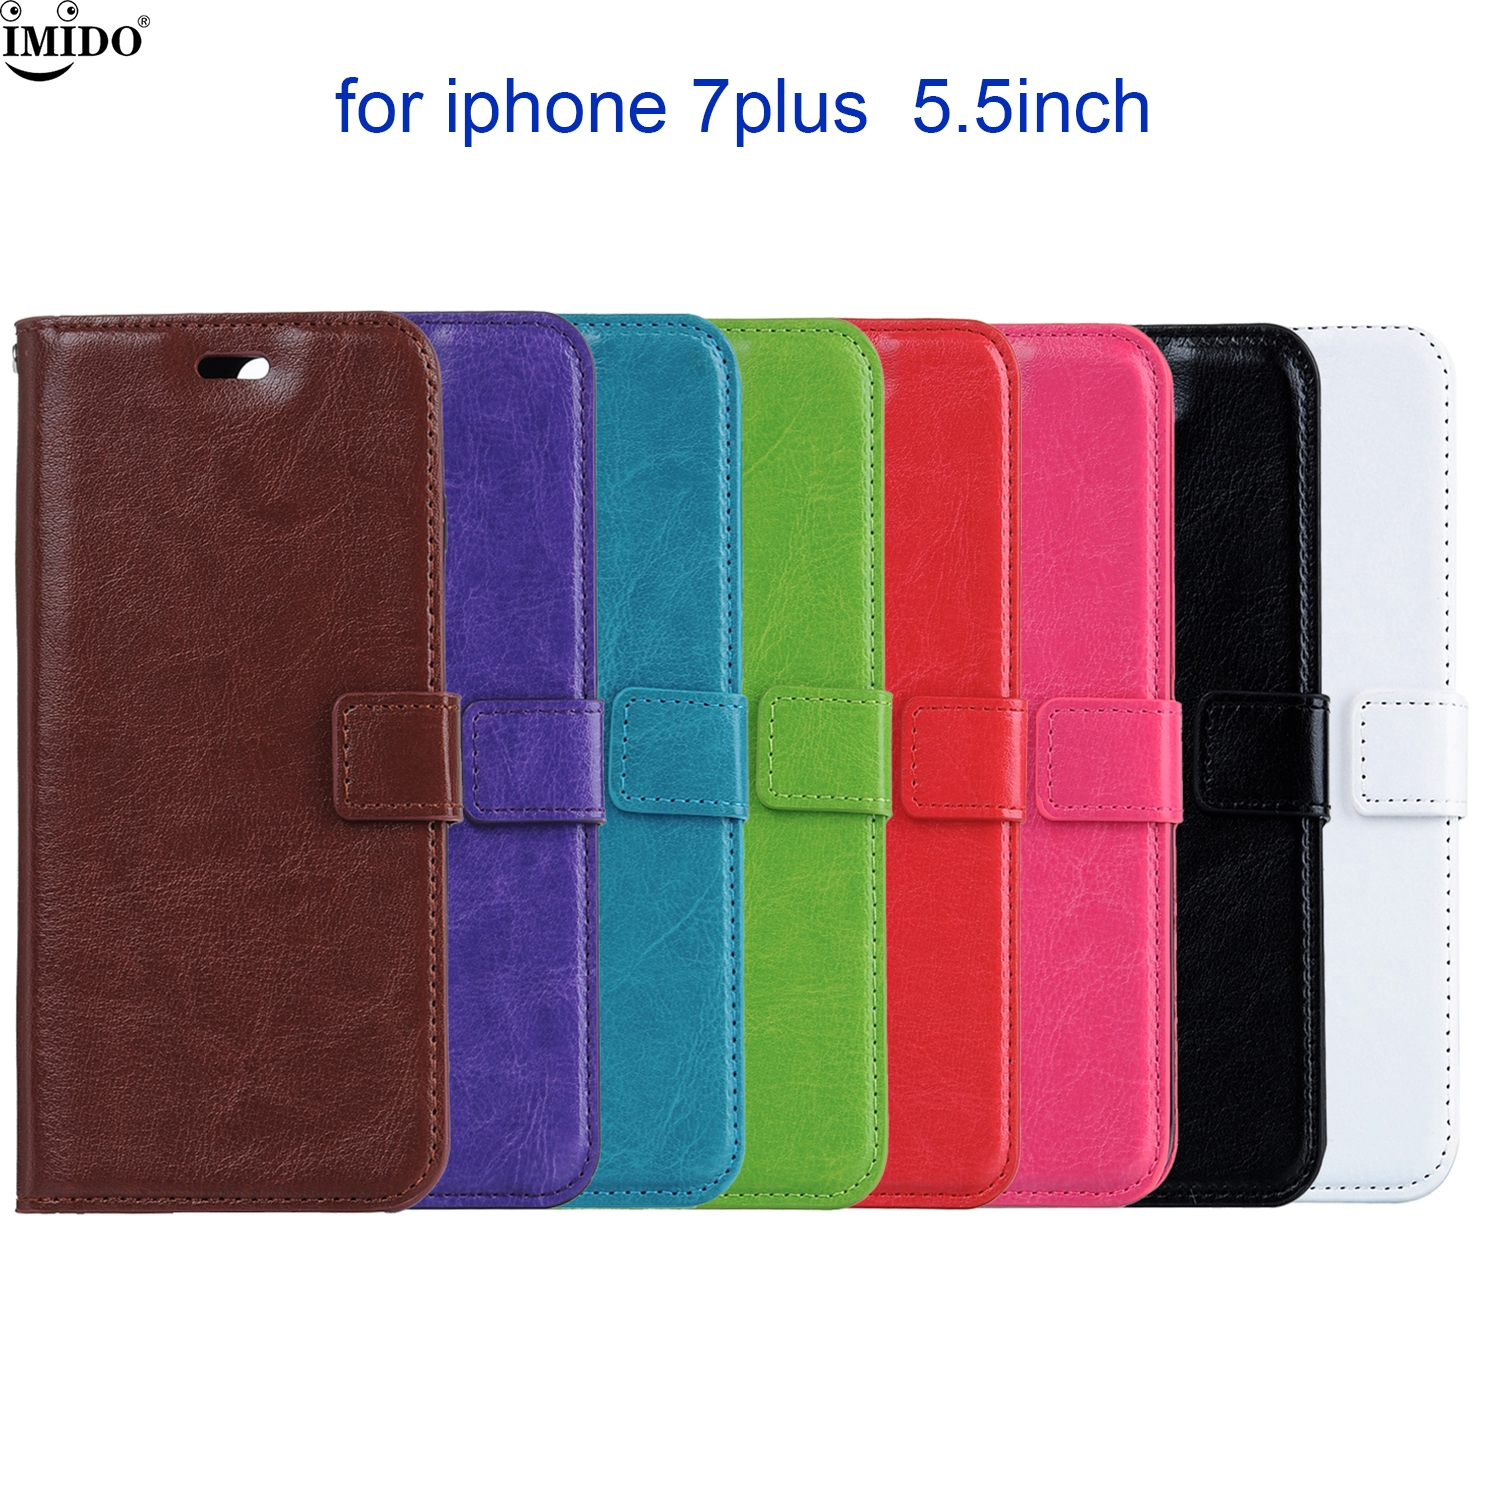 8 Patterns Pureed Color Retro Leather Flip Case For Apple 7plus / iPhone 7 plus; 5.5 iPhone7plus 2017 new Vintage Phone Holster